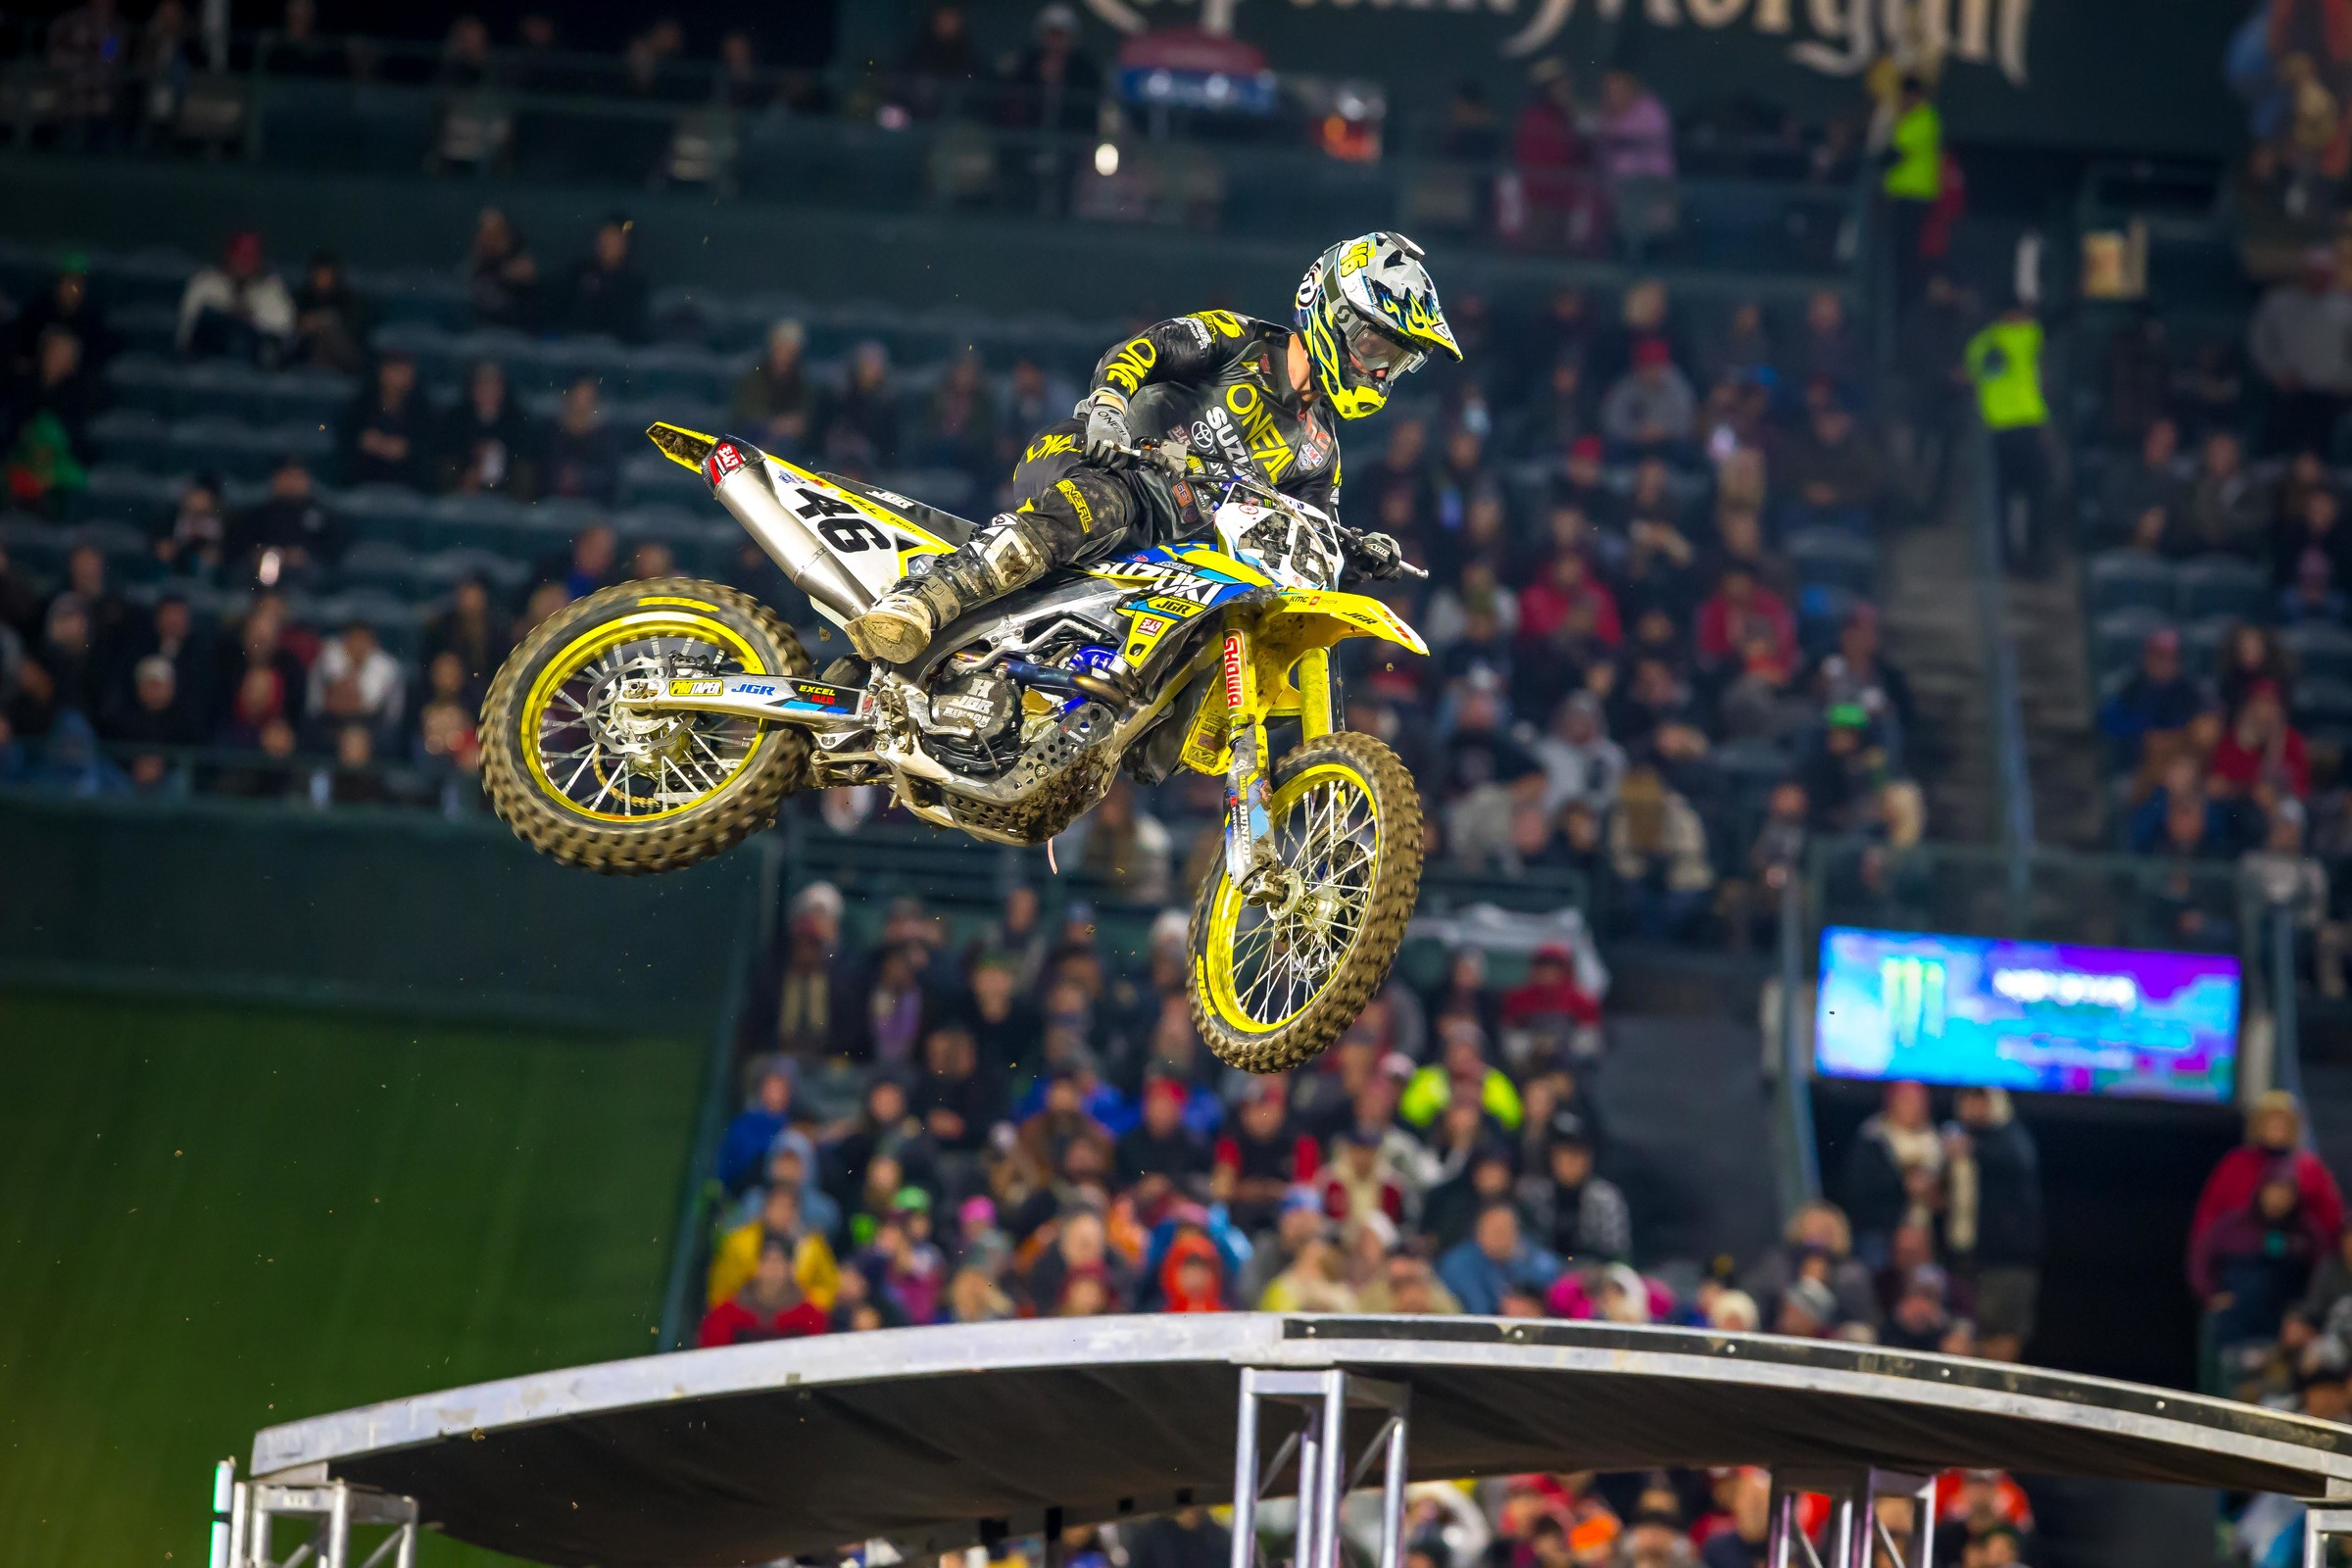 Justin Hill finished 15th at Anaheim 1.